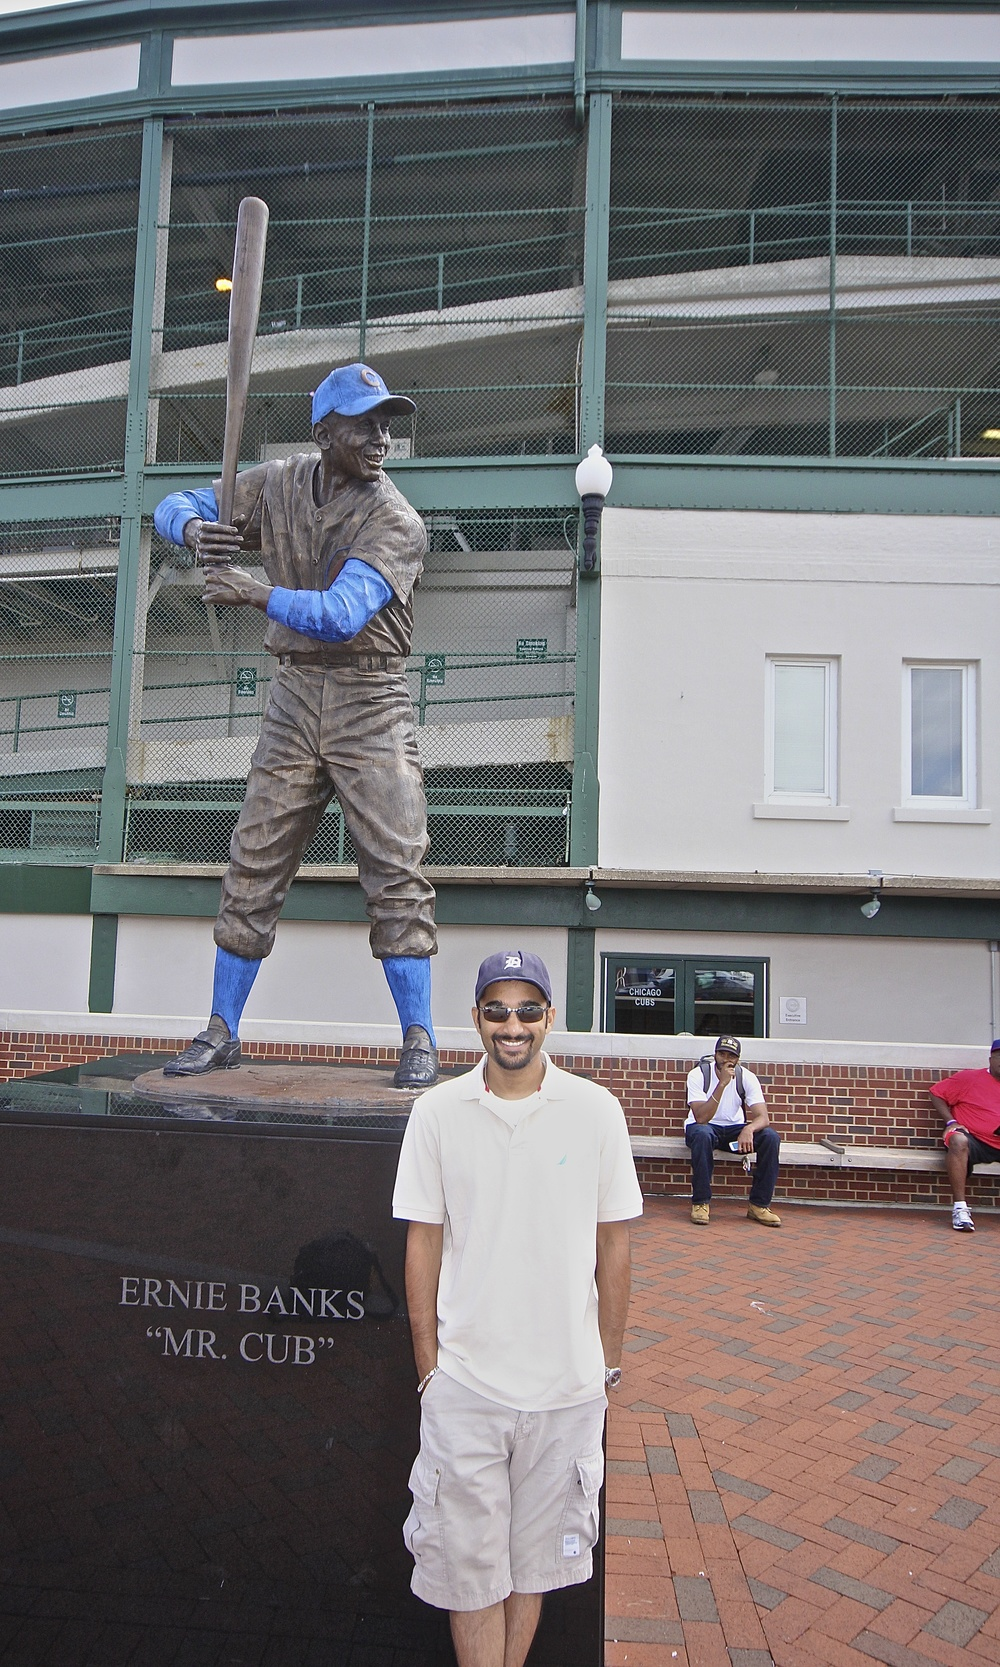 Me and Mr. Cub